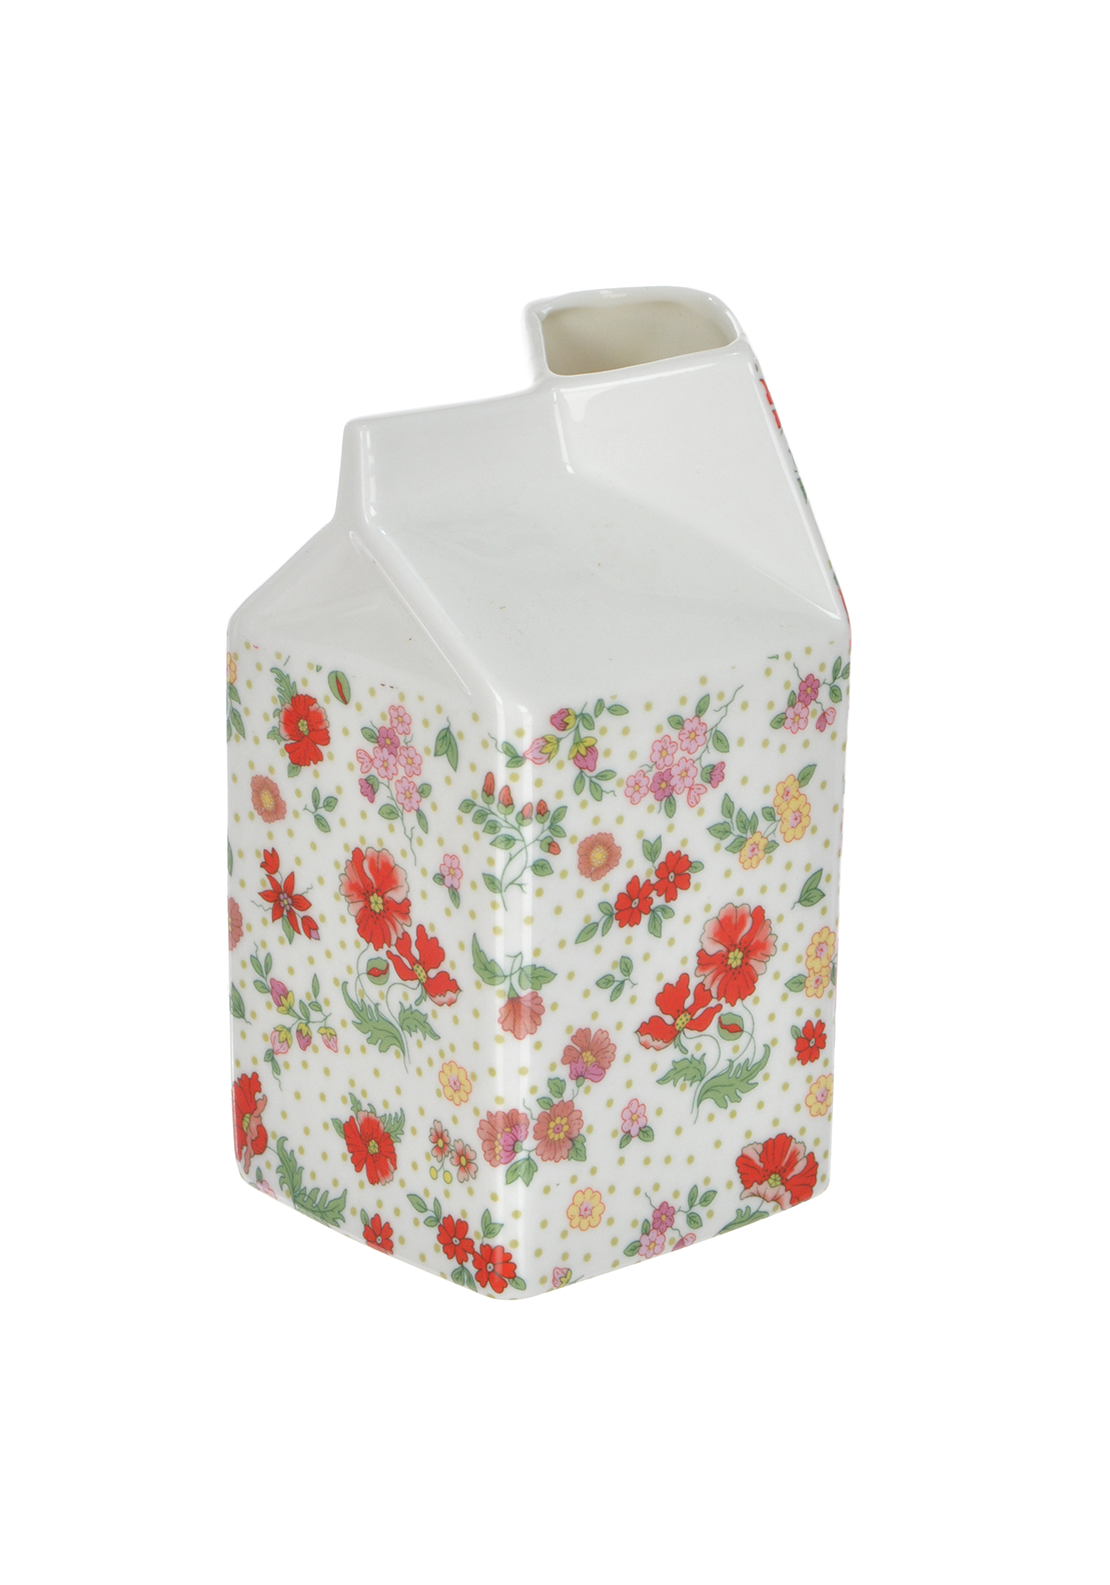 Shannon Bridge Ireland Miss Poppie Large Carton, White/Multi Floral Design